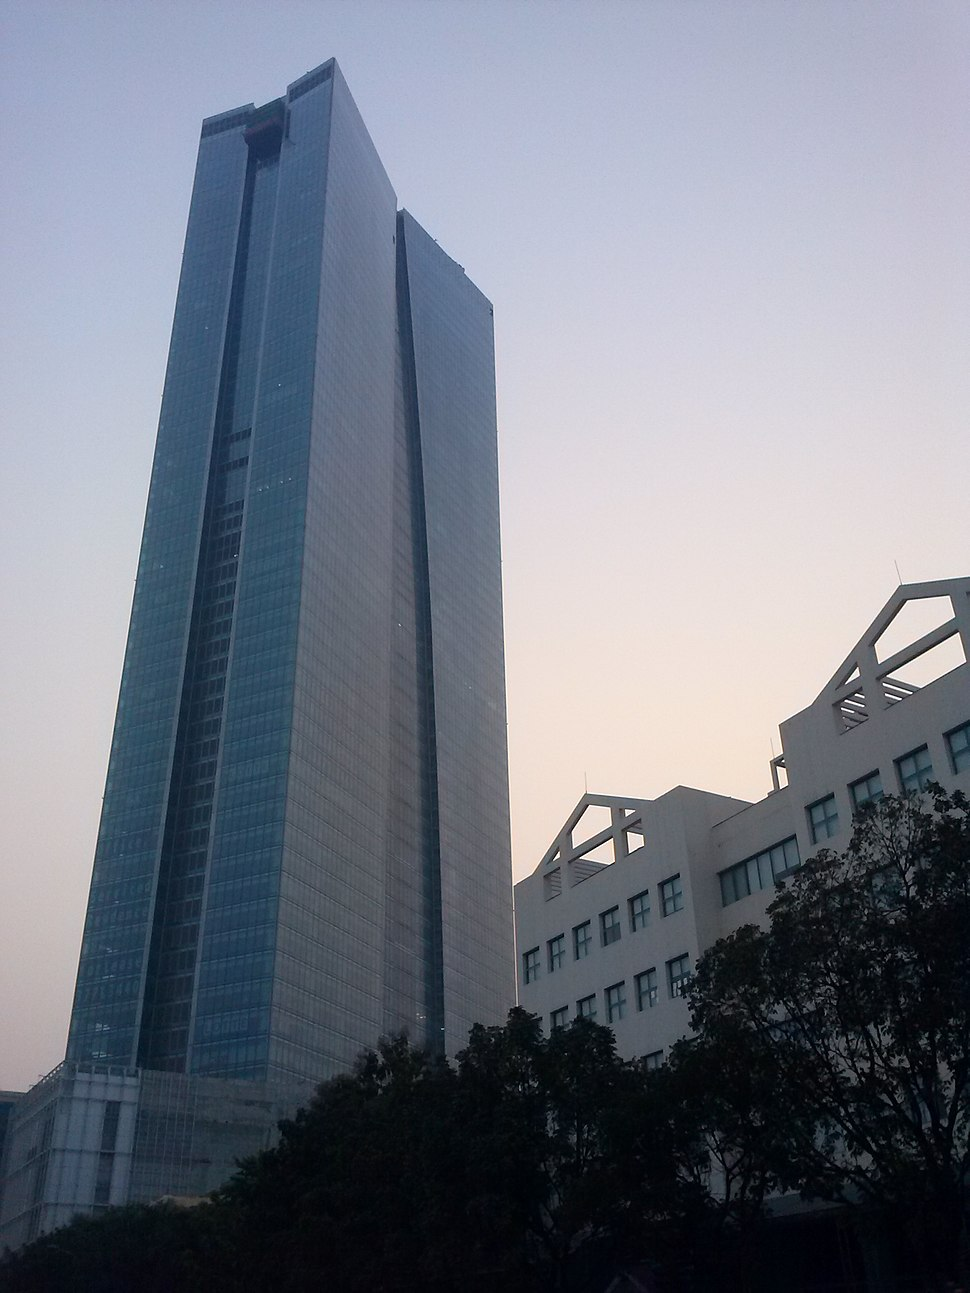 Lotte Center Hanoi 2